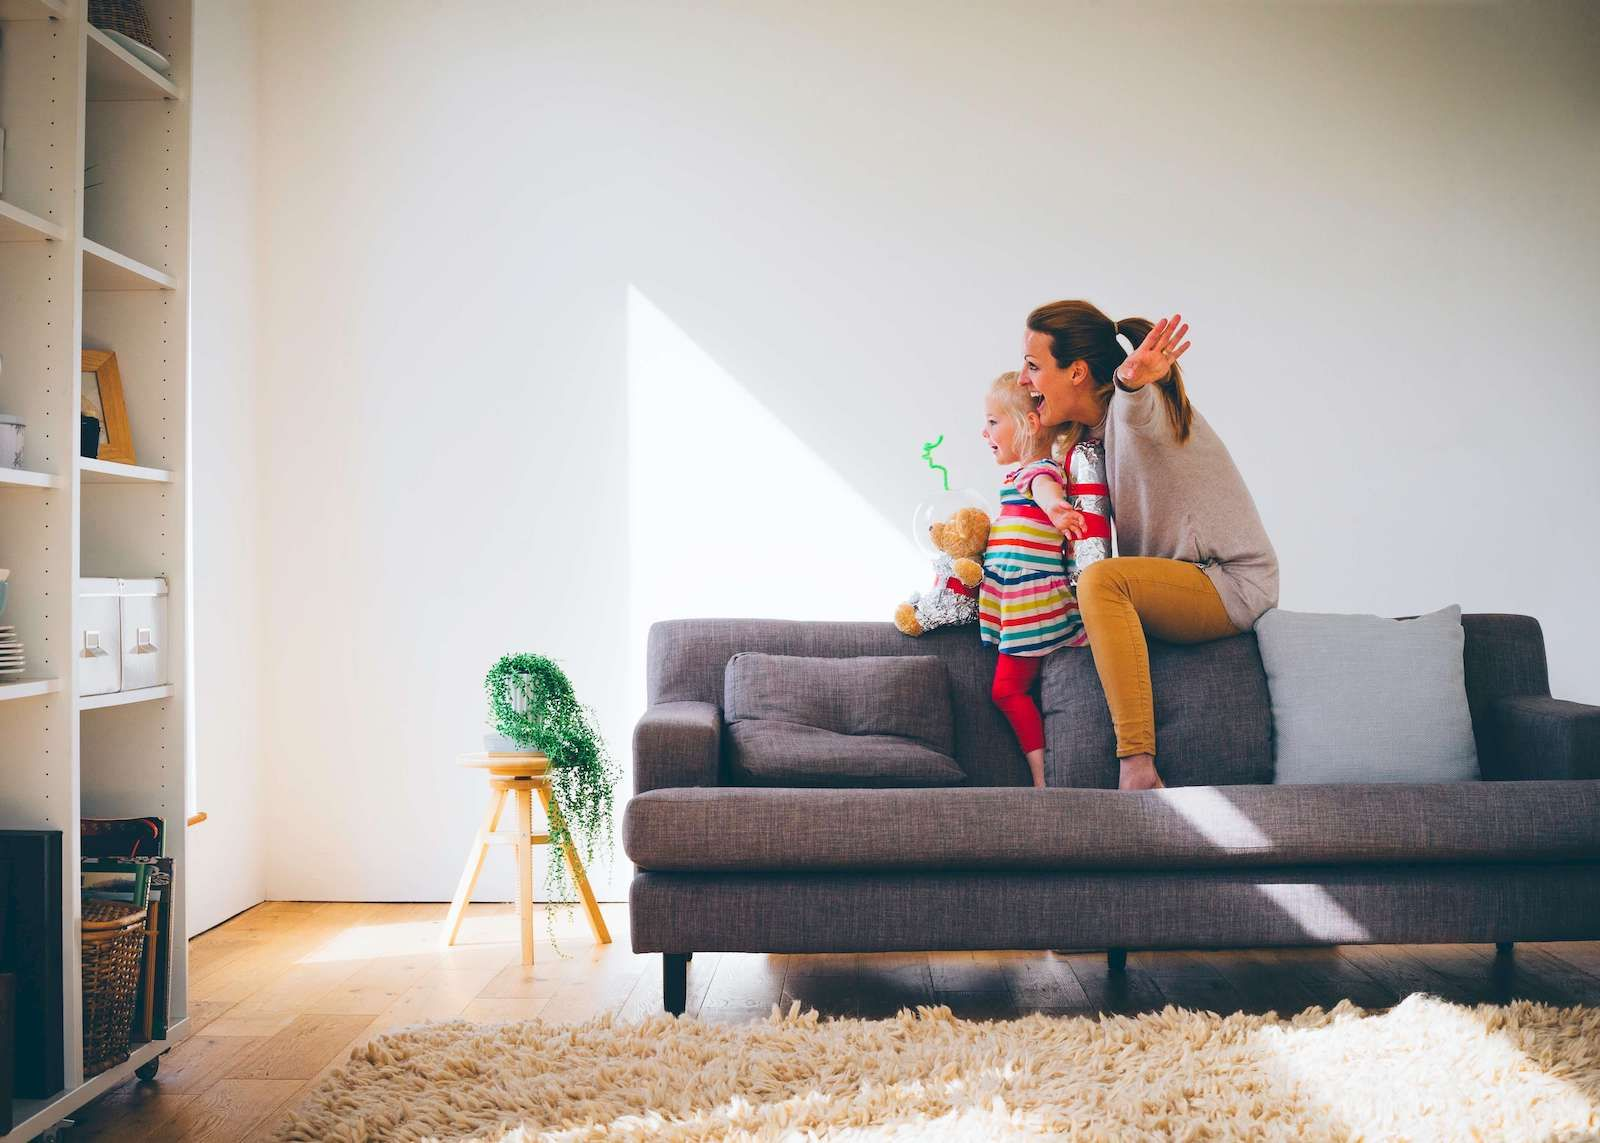 Buying a Property: The Ultimate Step-by-Step Guide